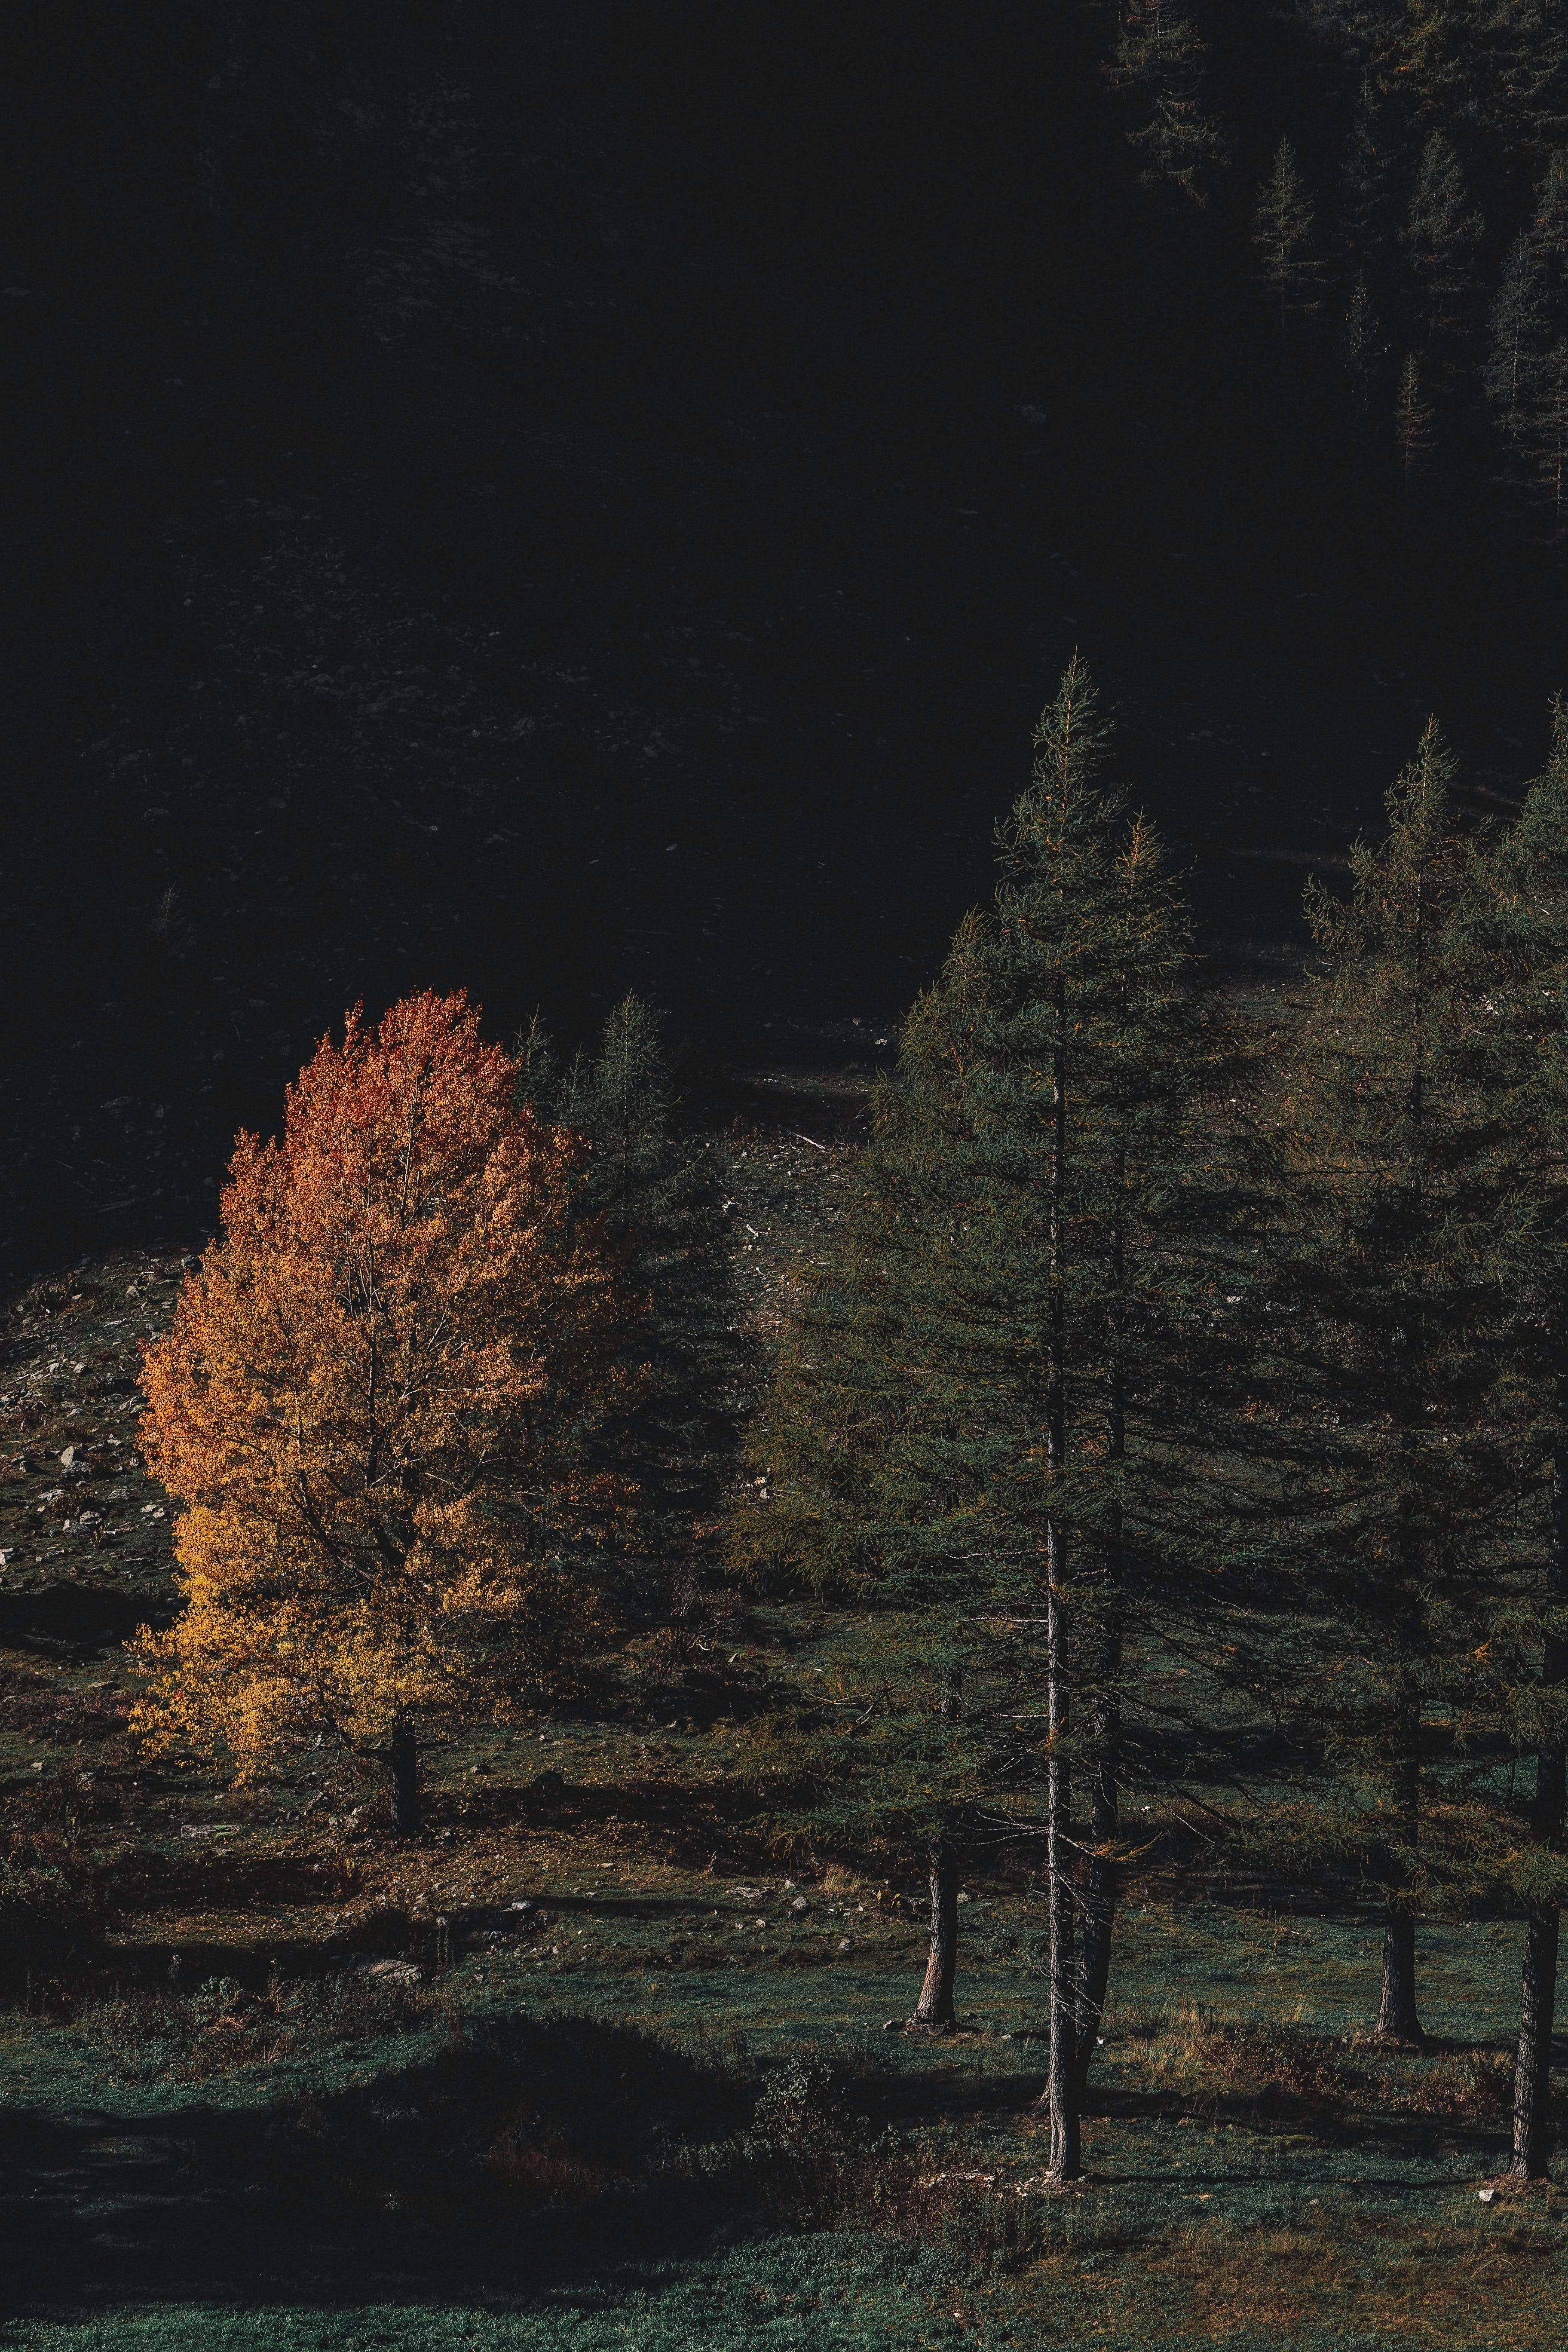 Brown and Green-leafed Forest during Night Time